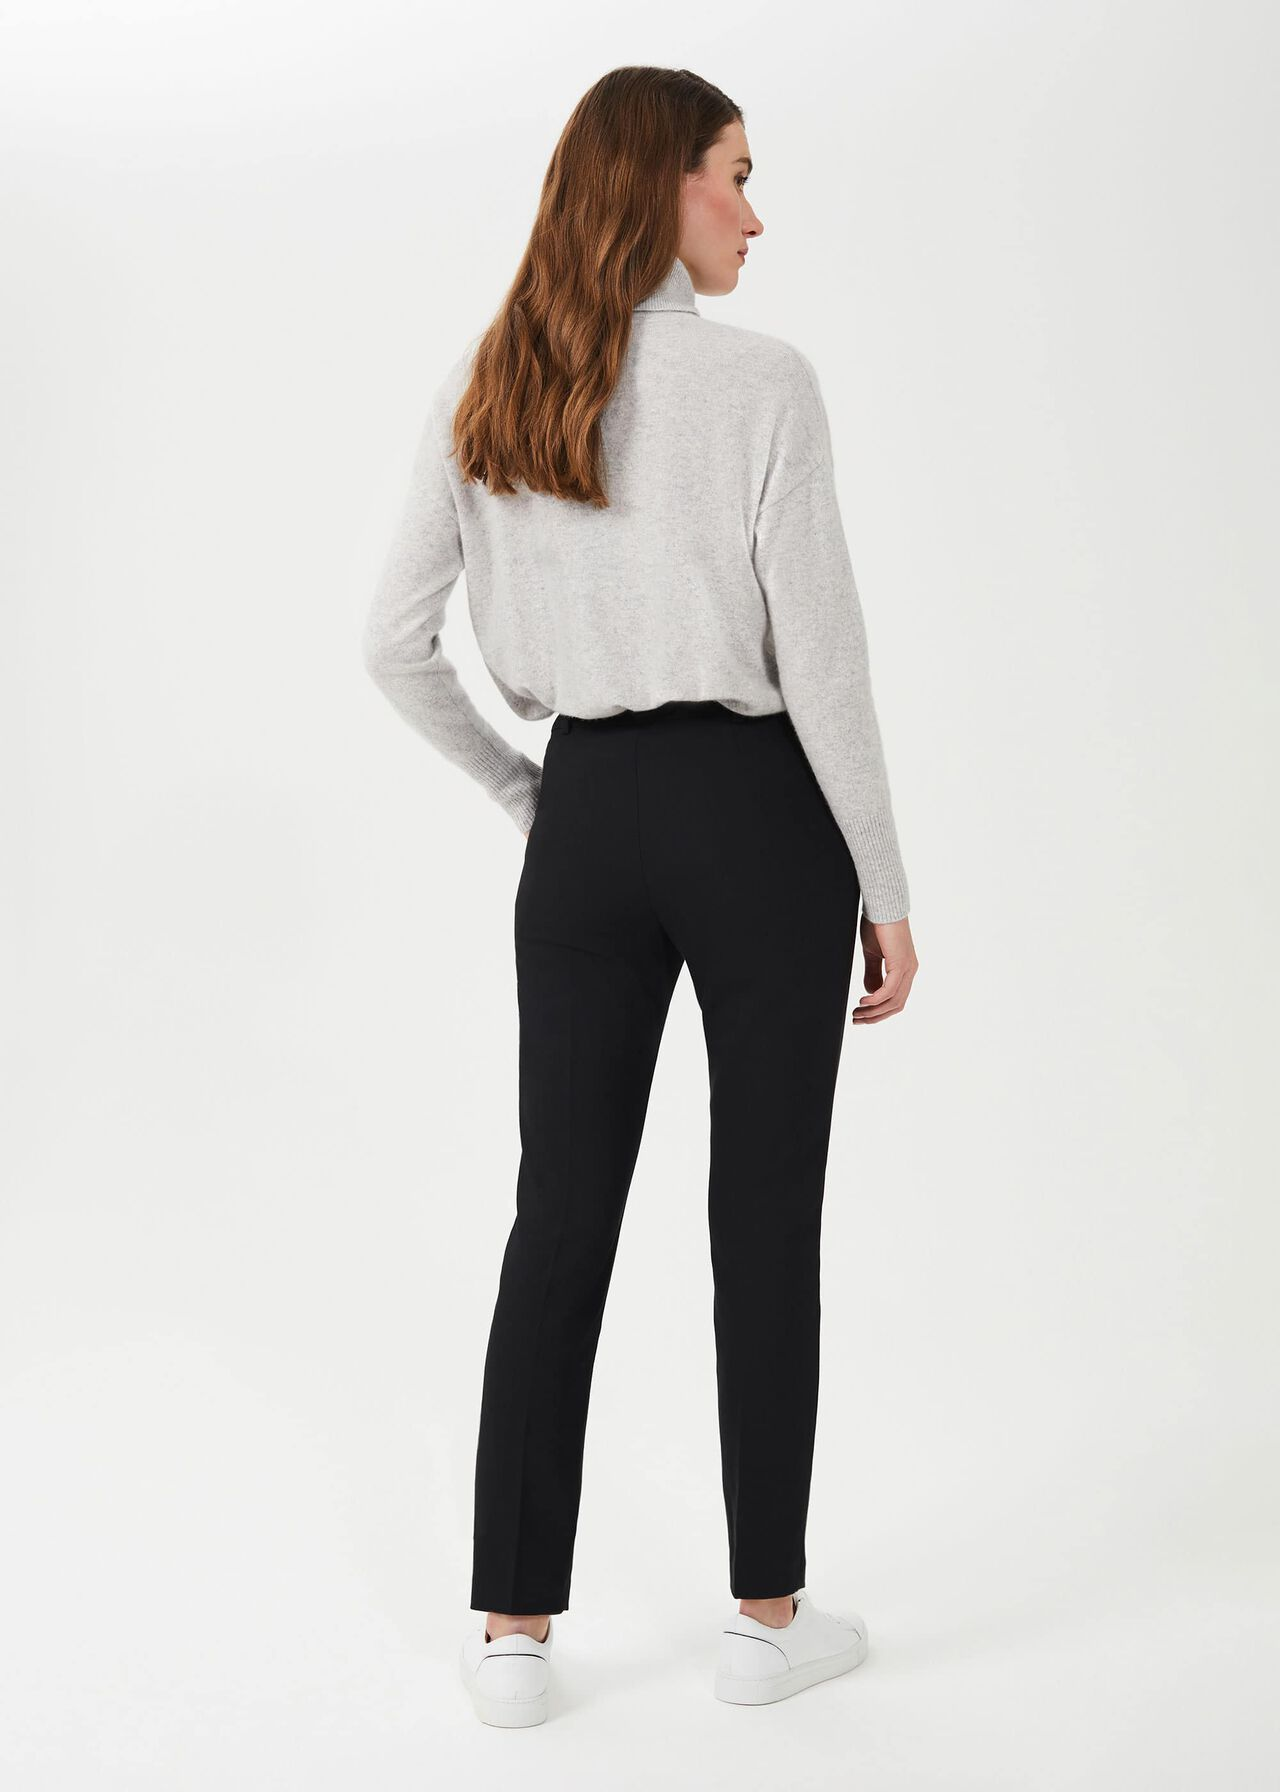 Quin Tapered Trousers With Stretch, Black, hi-res